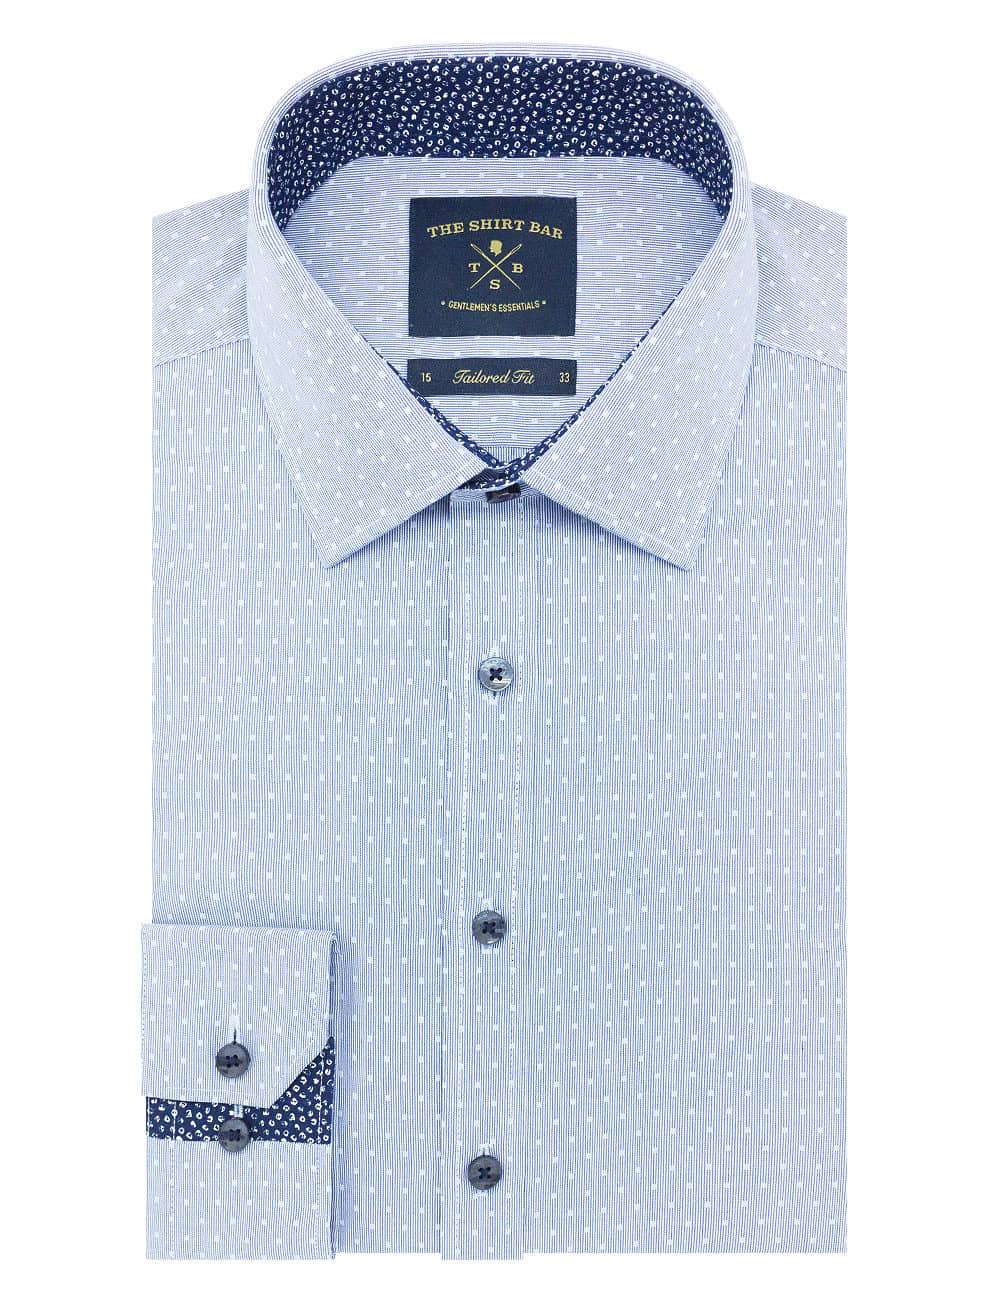 Tailored Fit Blue with White Square Cotton Blend Spill Resist Long Sleeve Single Cuff Shirt TF2F8.16